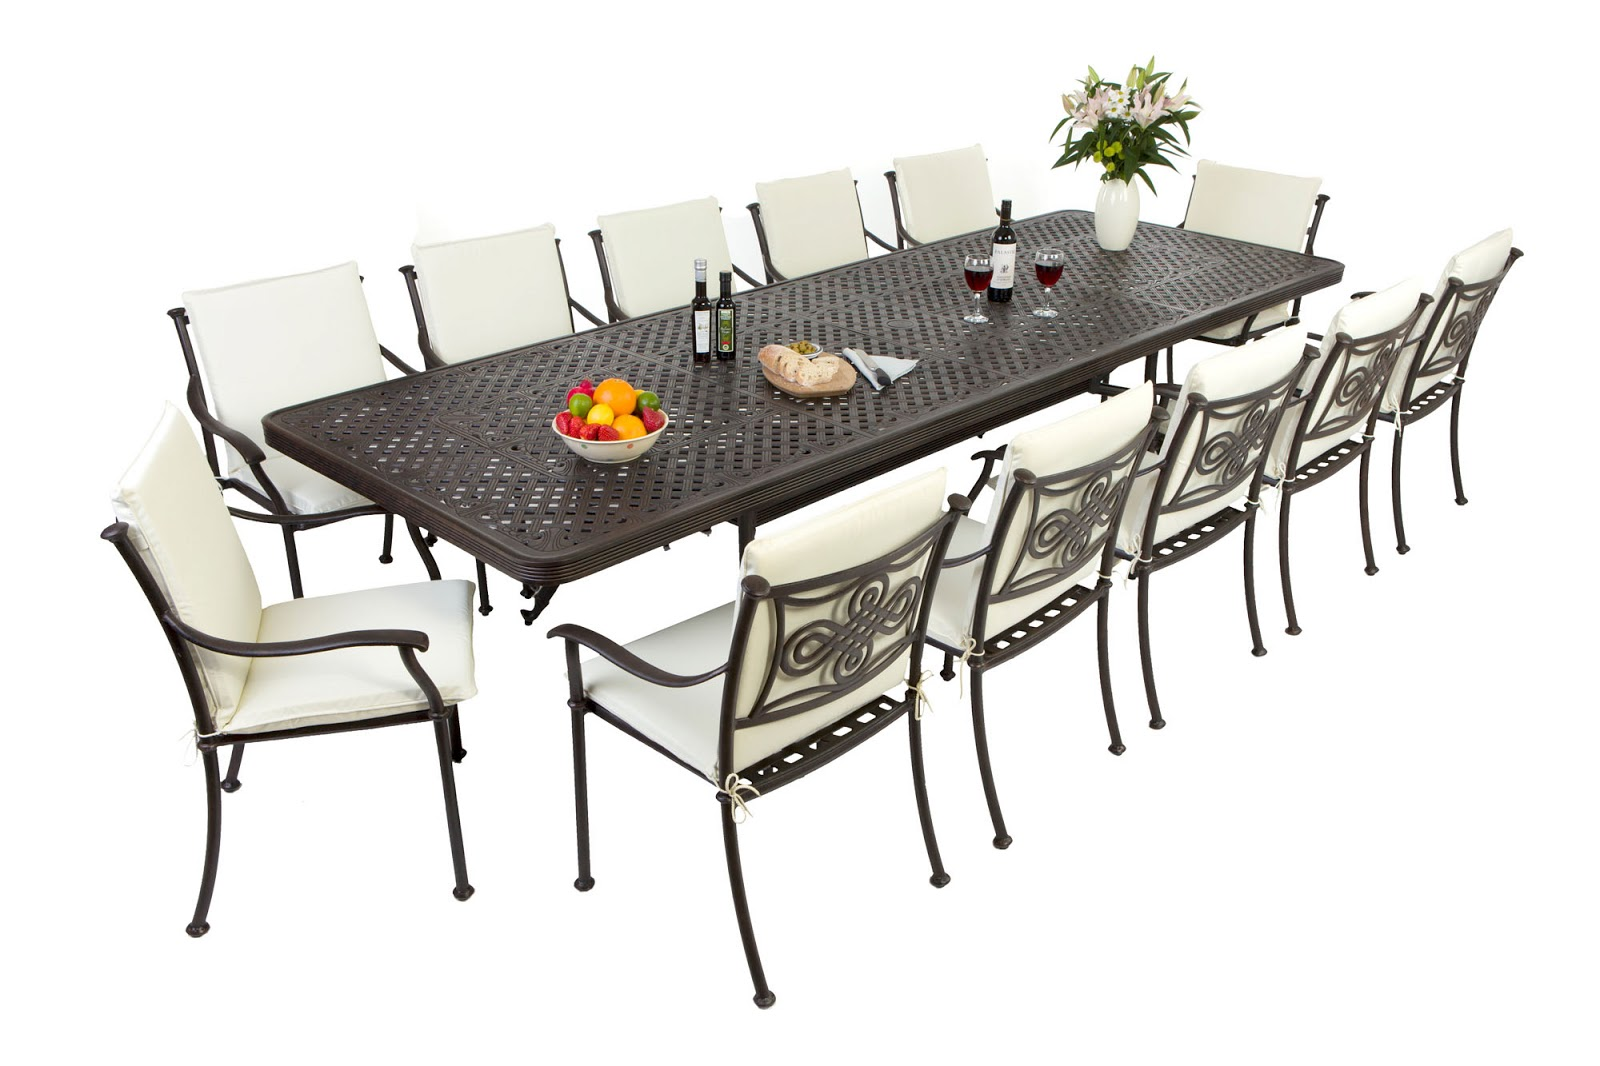 furniture set in the uk the rhodes 14 seater outdoor furniture set